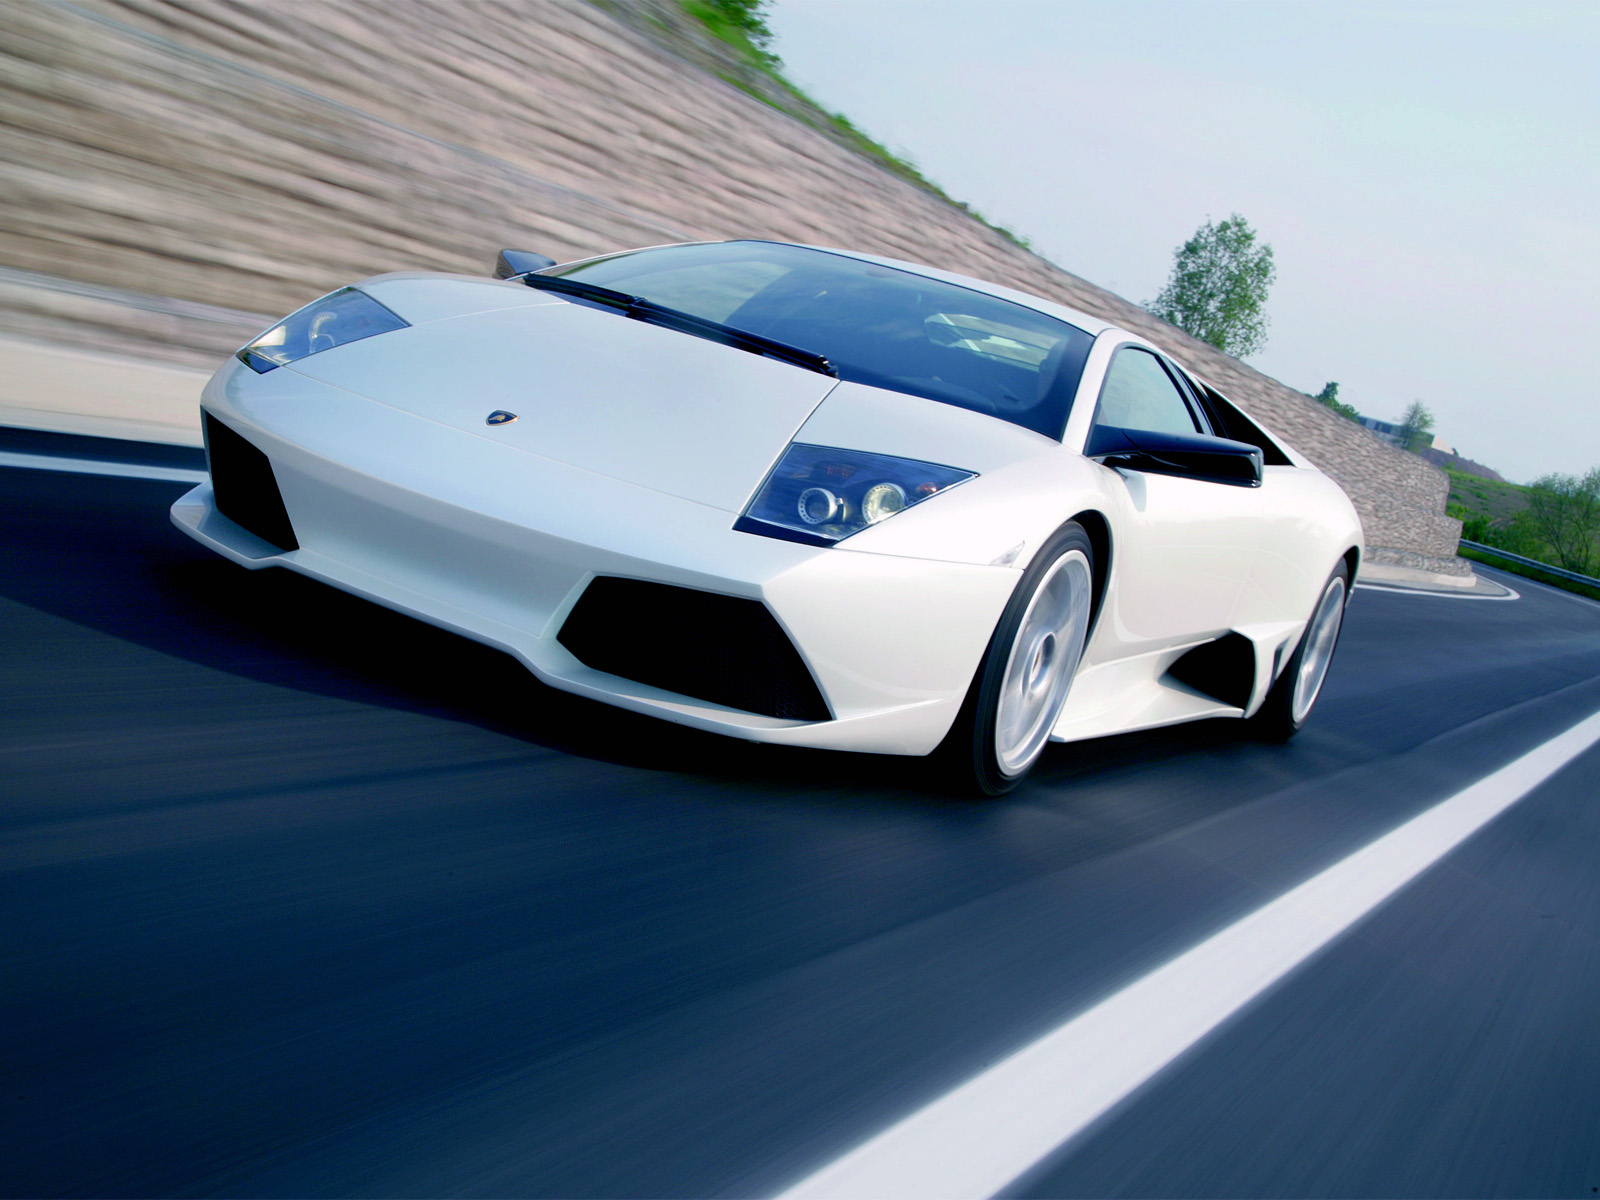 Cool car wallpaper high definition 2886